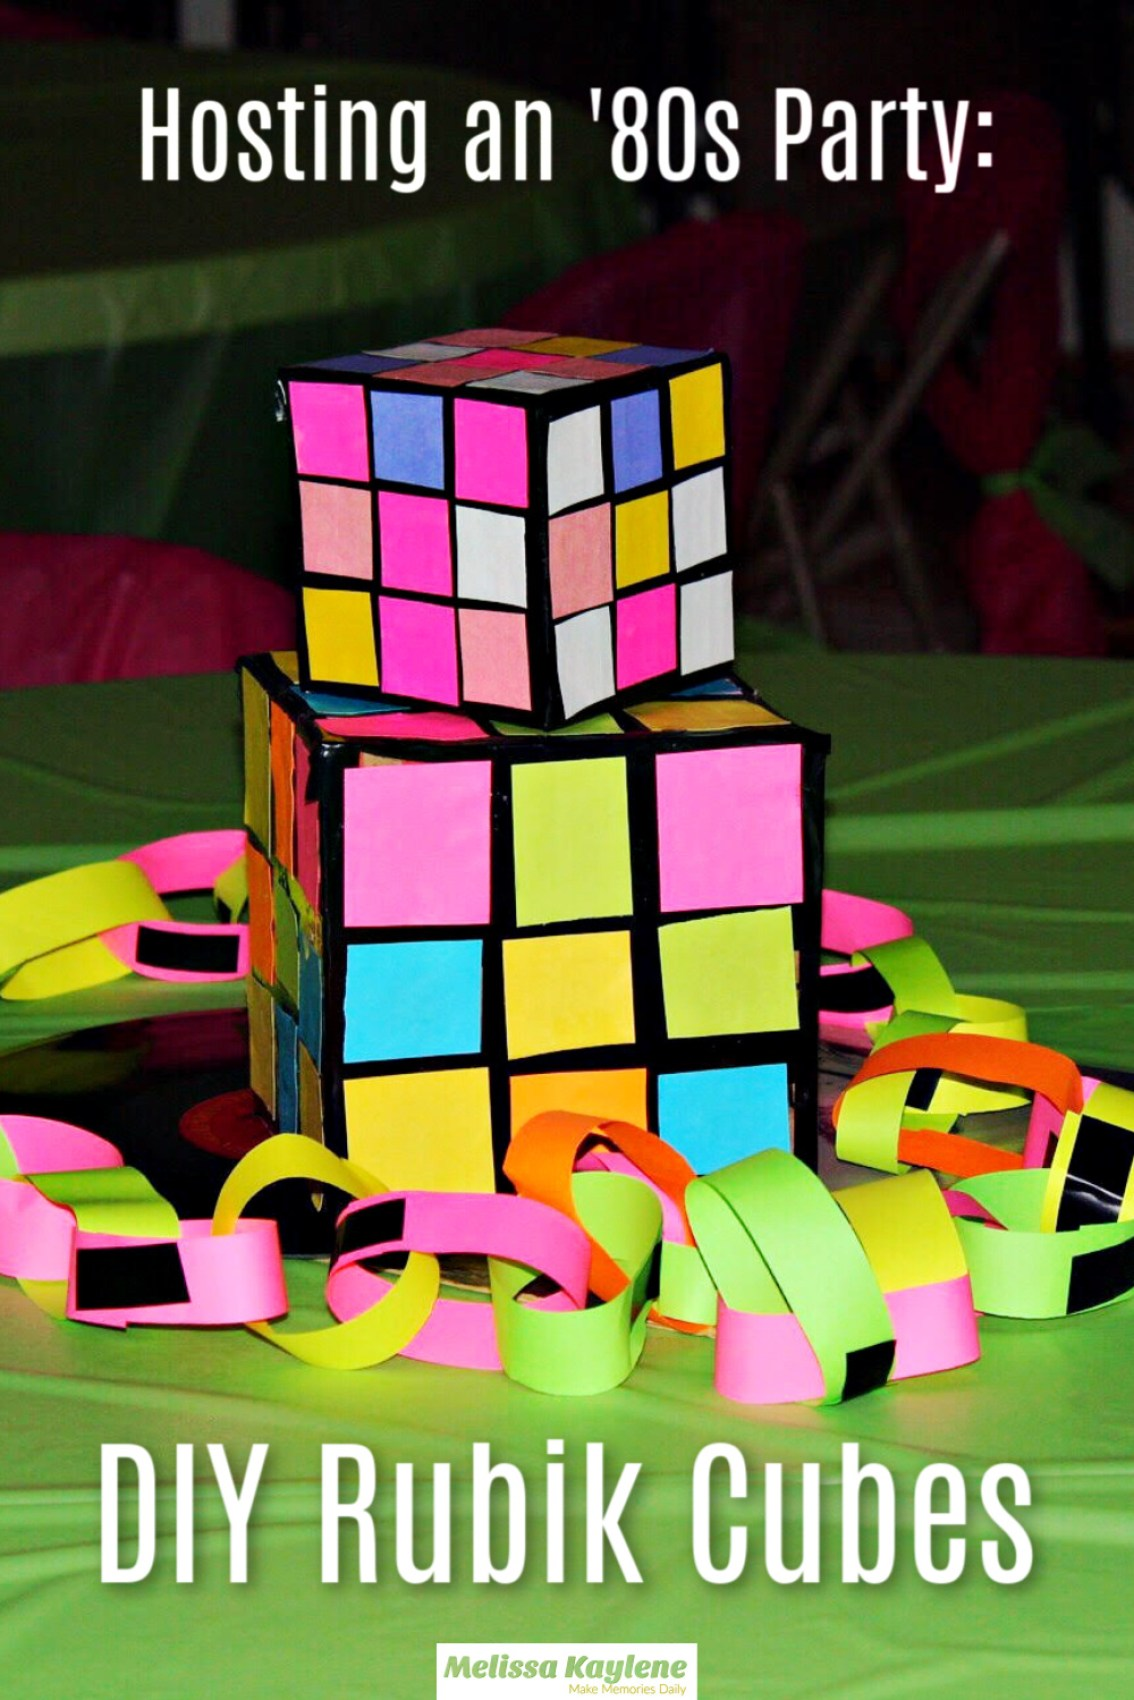 DIY Rubik Cubes 1980's Party